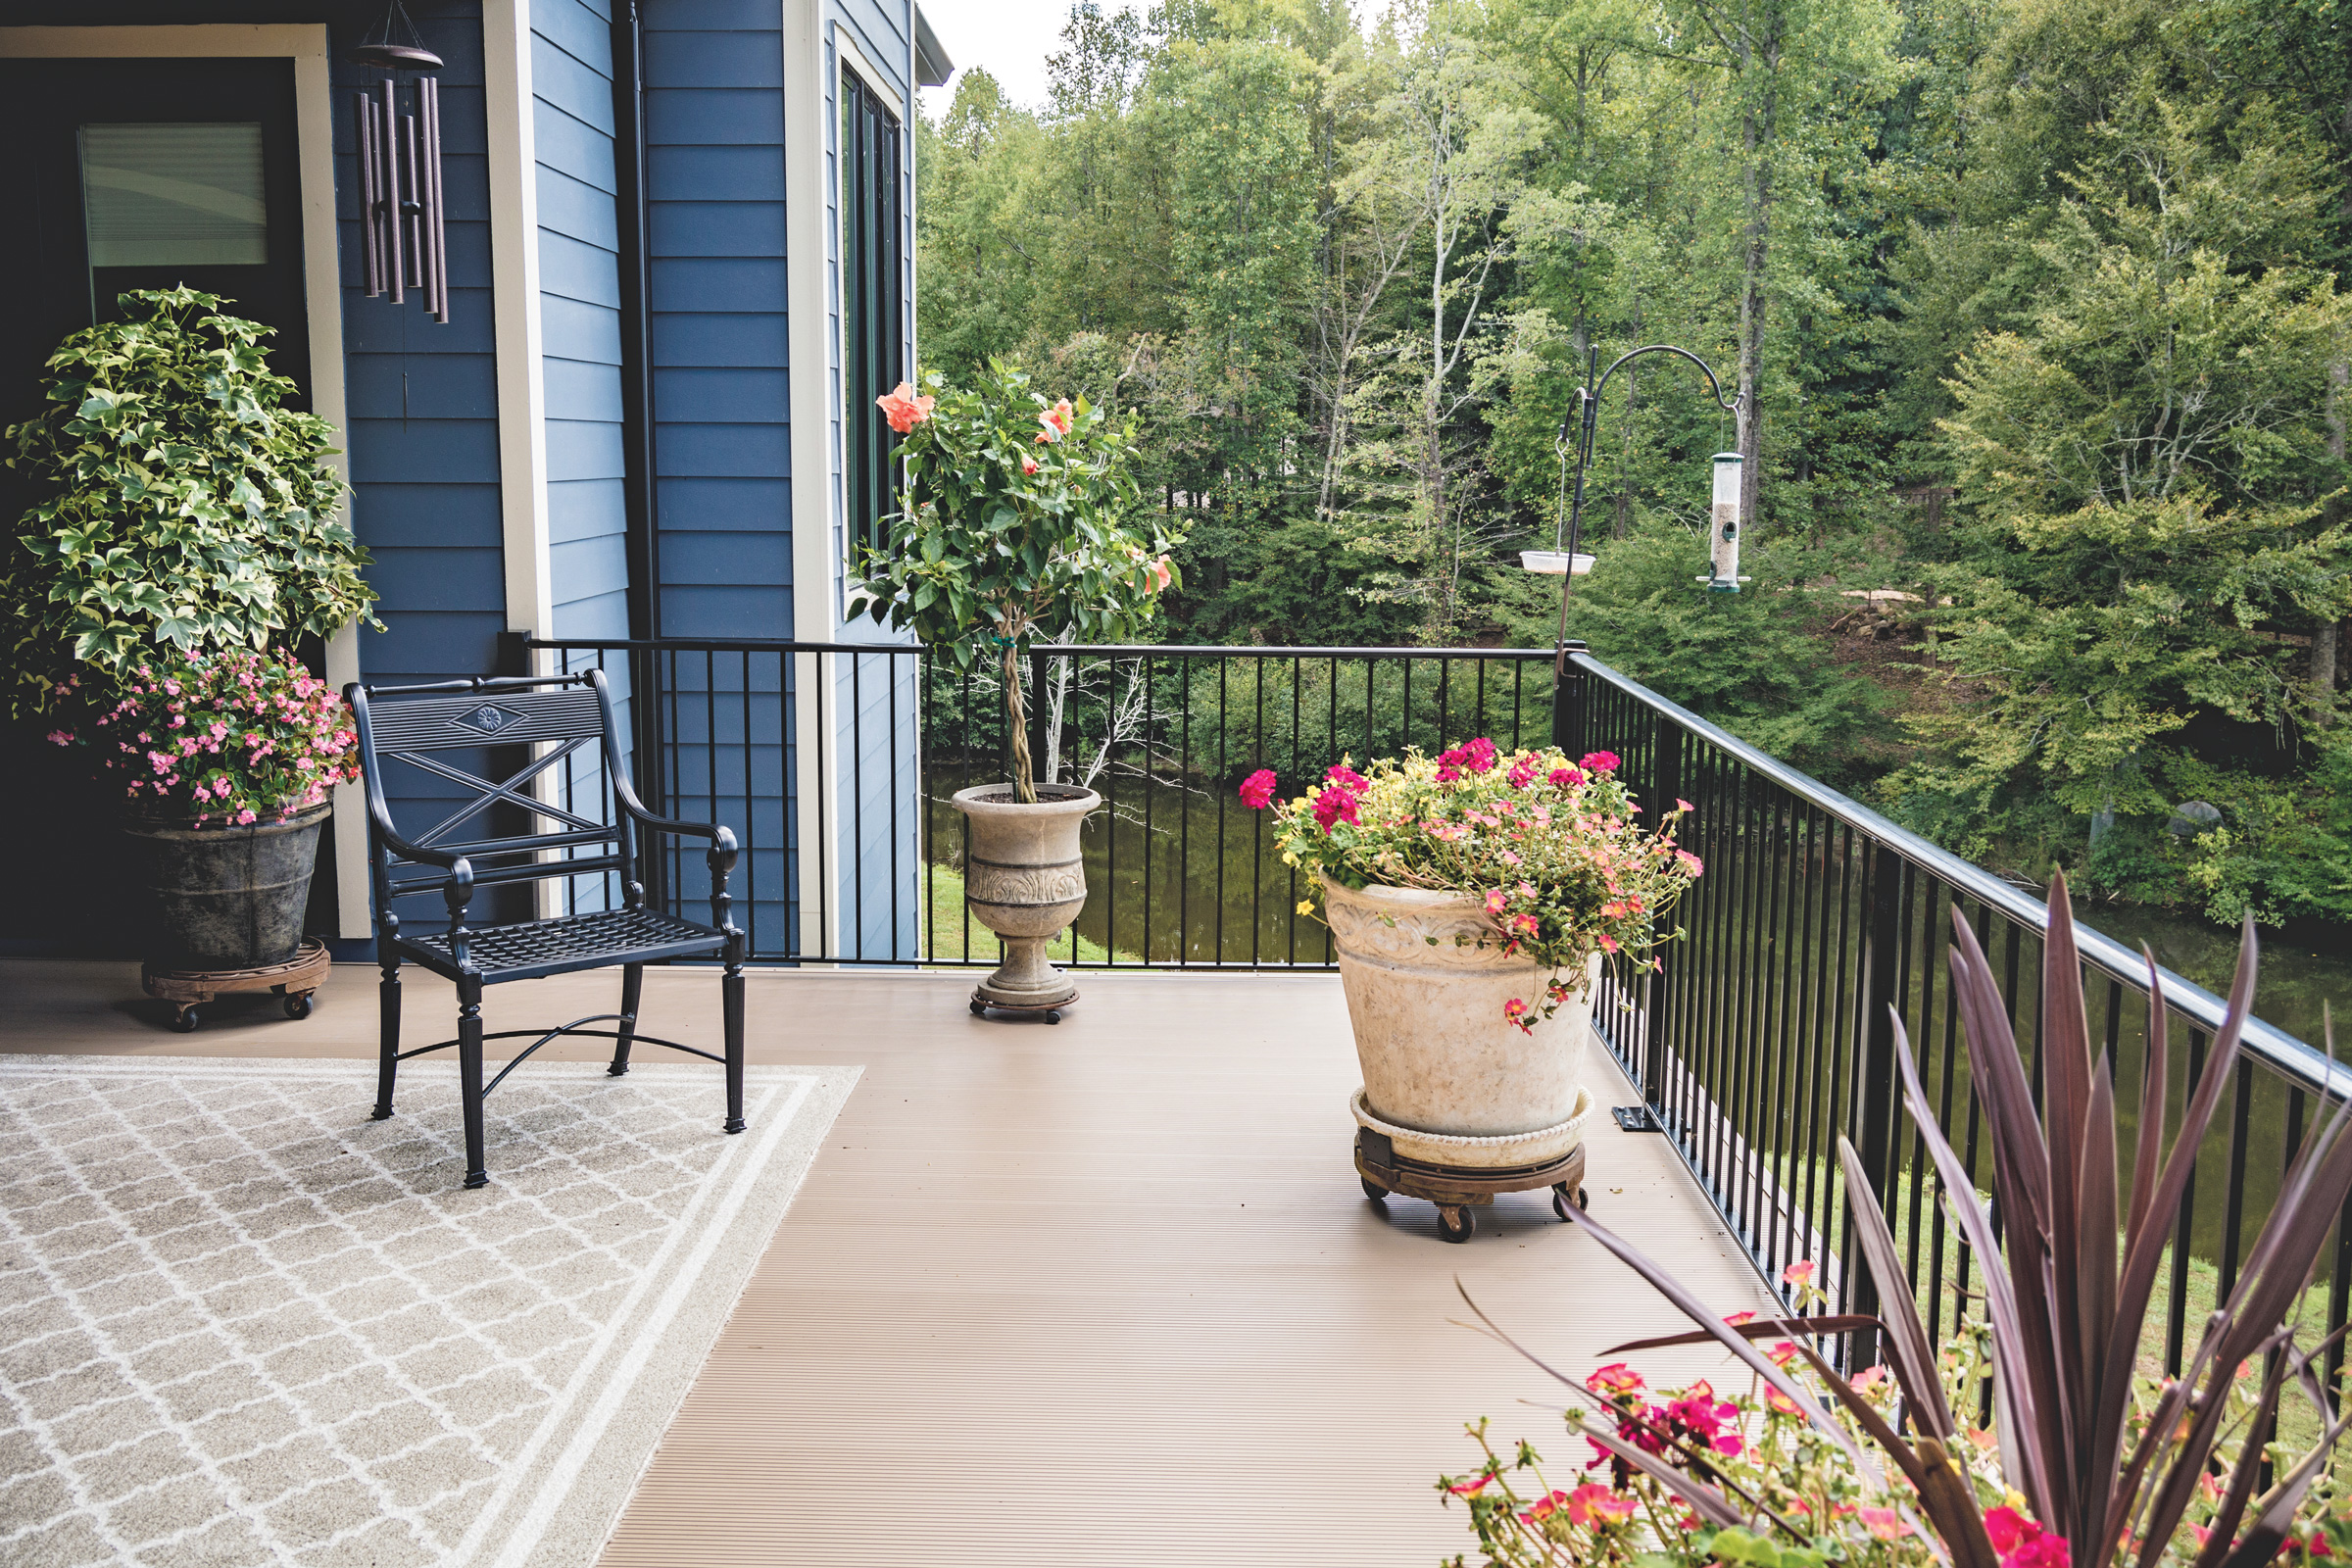 How Aluminum Decking is a More Sustainable, Low-Maintenance Choice